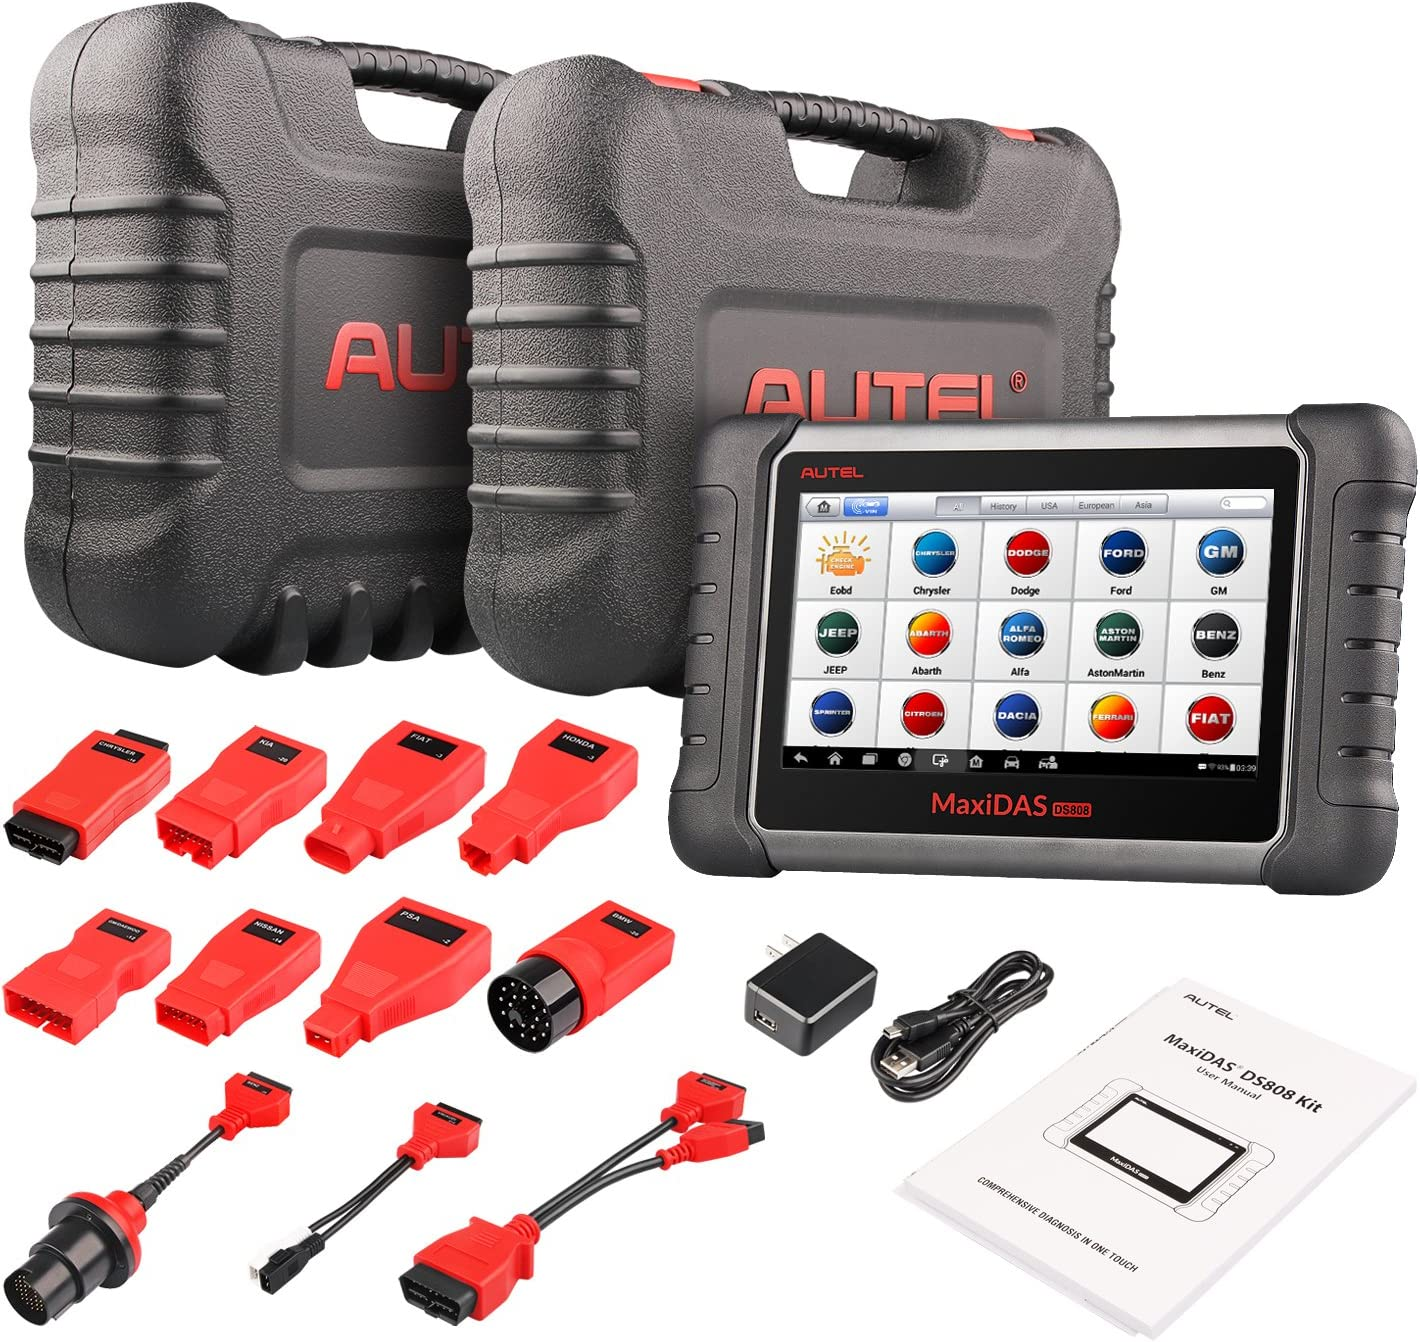 Autel MaxiDAS DS808K (Upgraded Version of DS708,DS808) OBD2 Scanner Best Car Code Reader Diagnostic Tool KIT Tablet Full Set Support Injector Key Coding with Autel Professional Carry Case